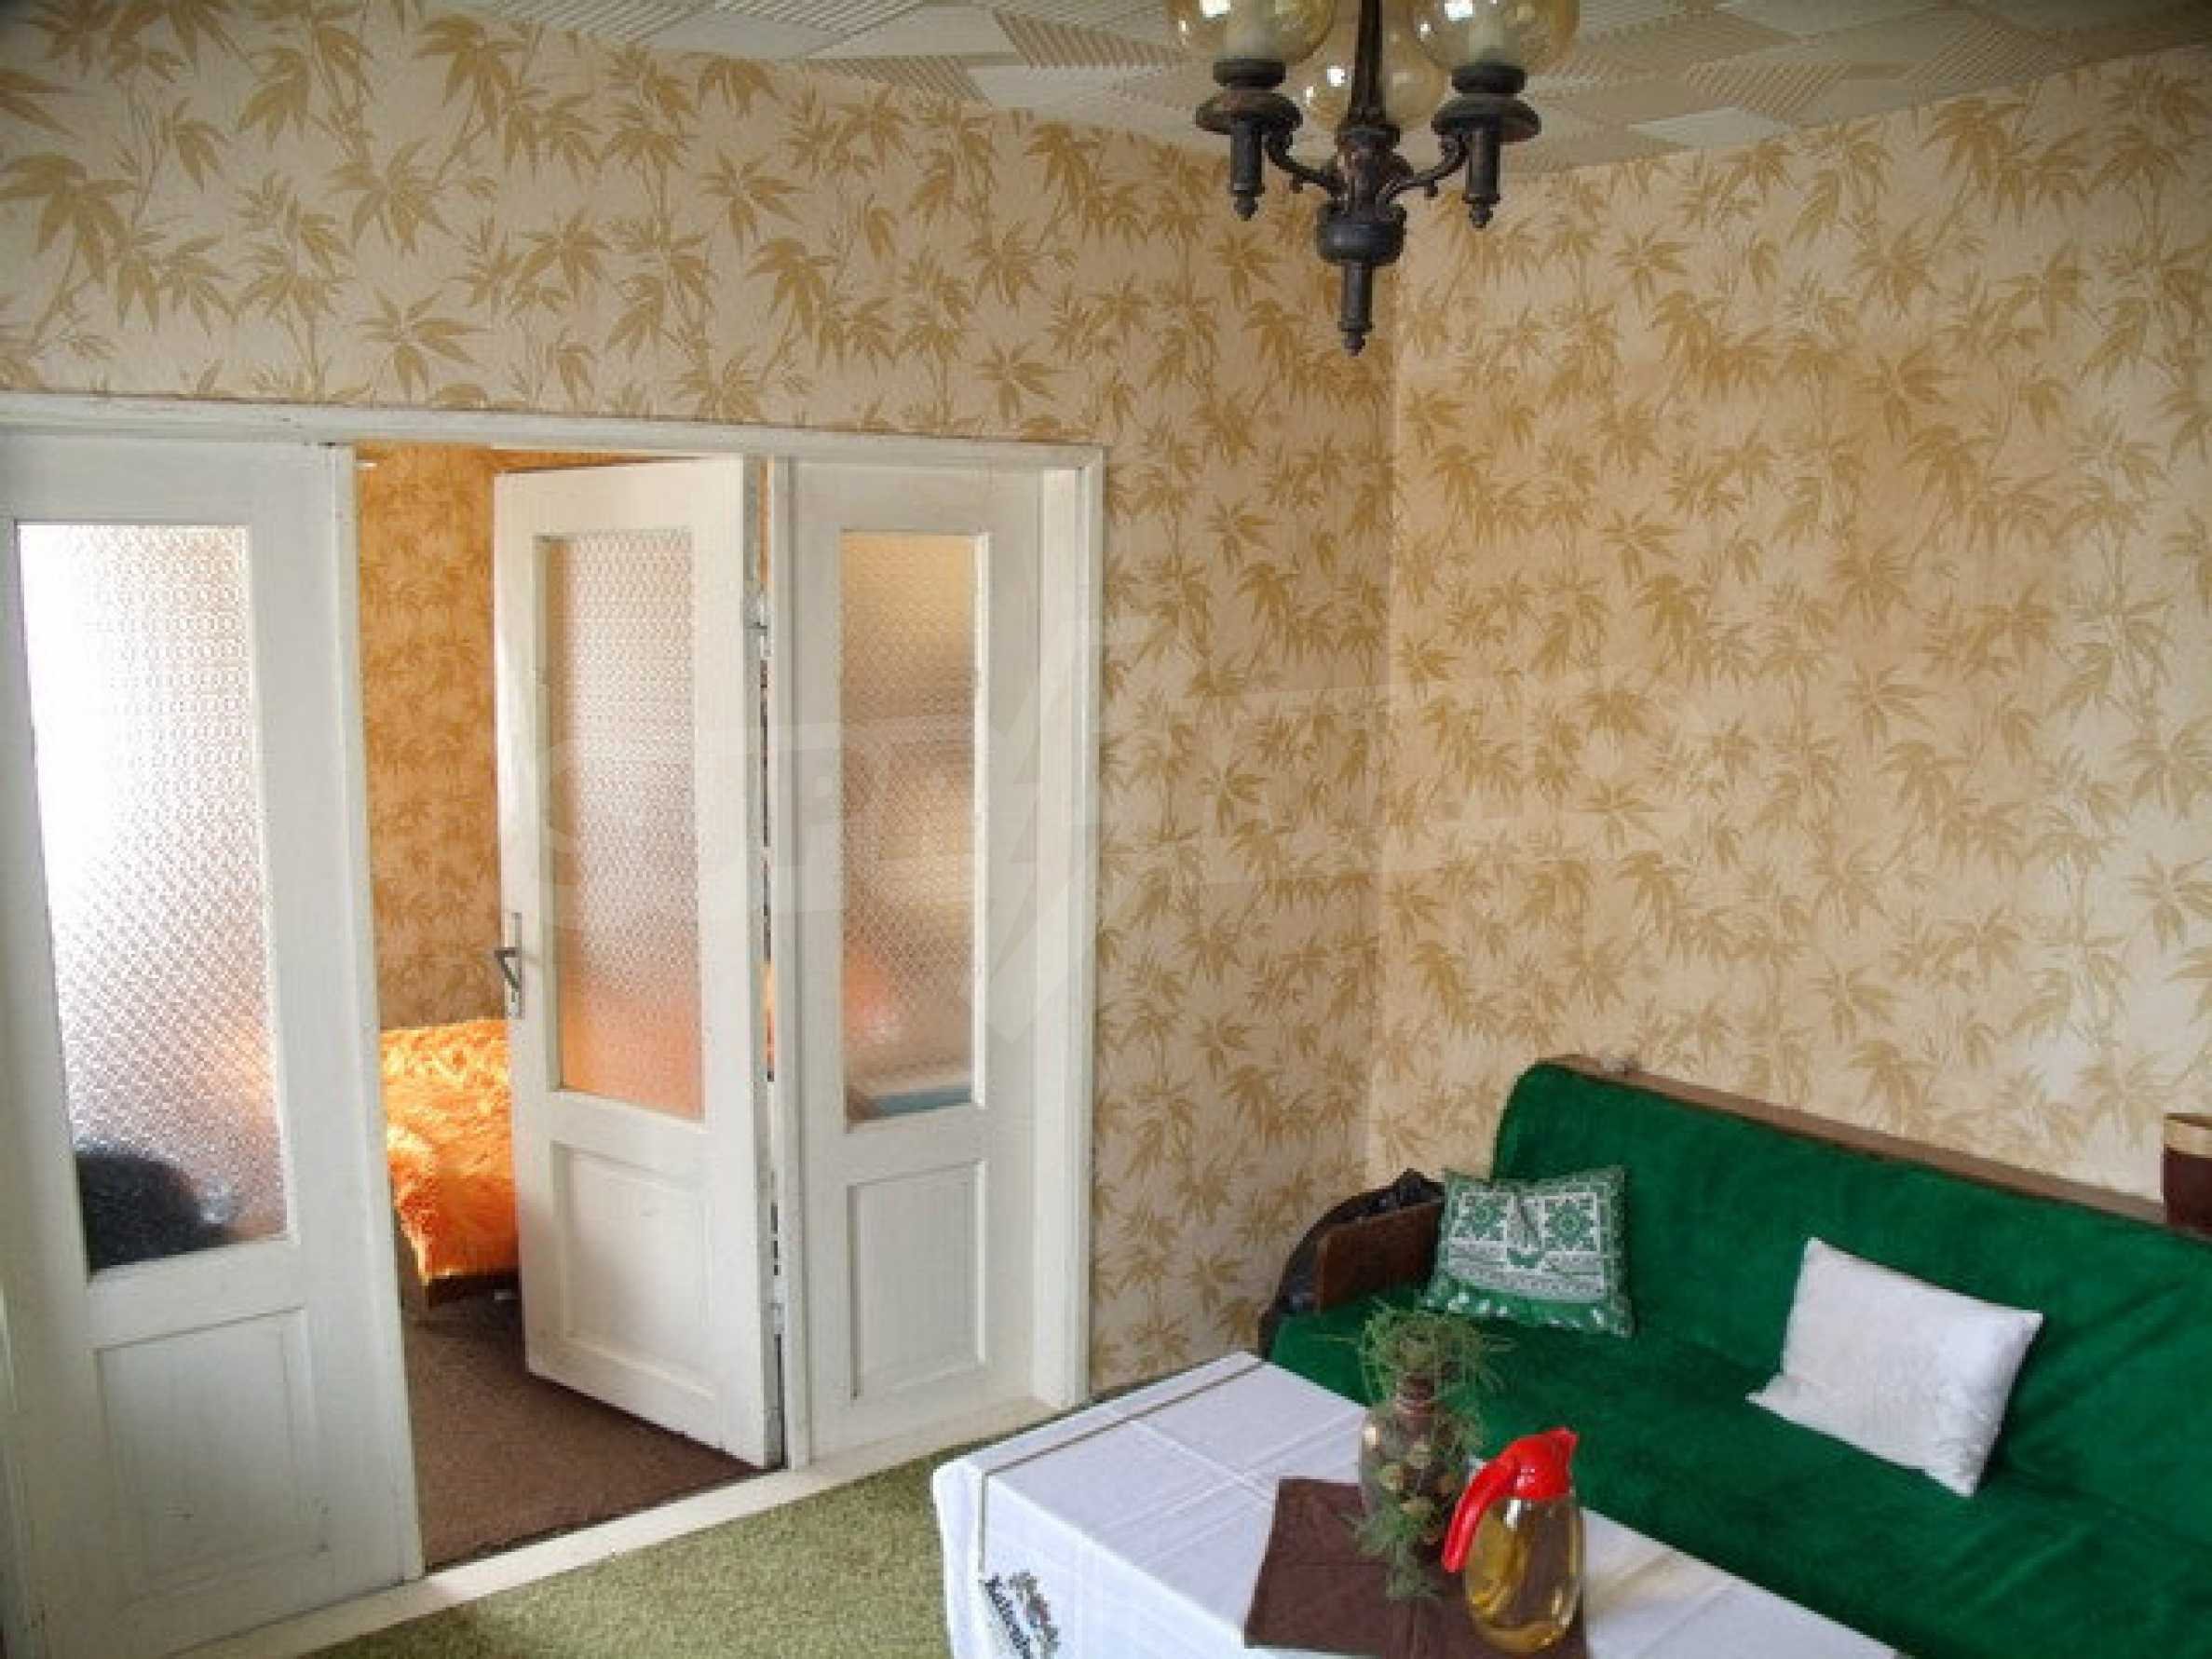 House in a small town, 15 km. from the old capital of Veliko Tarnovo 15